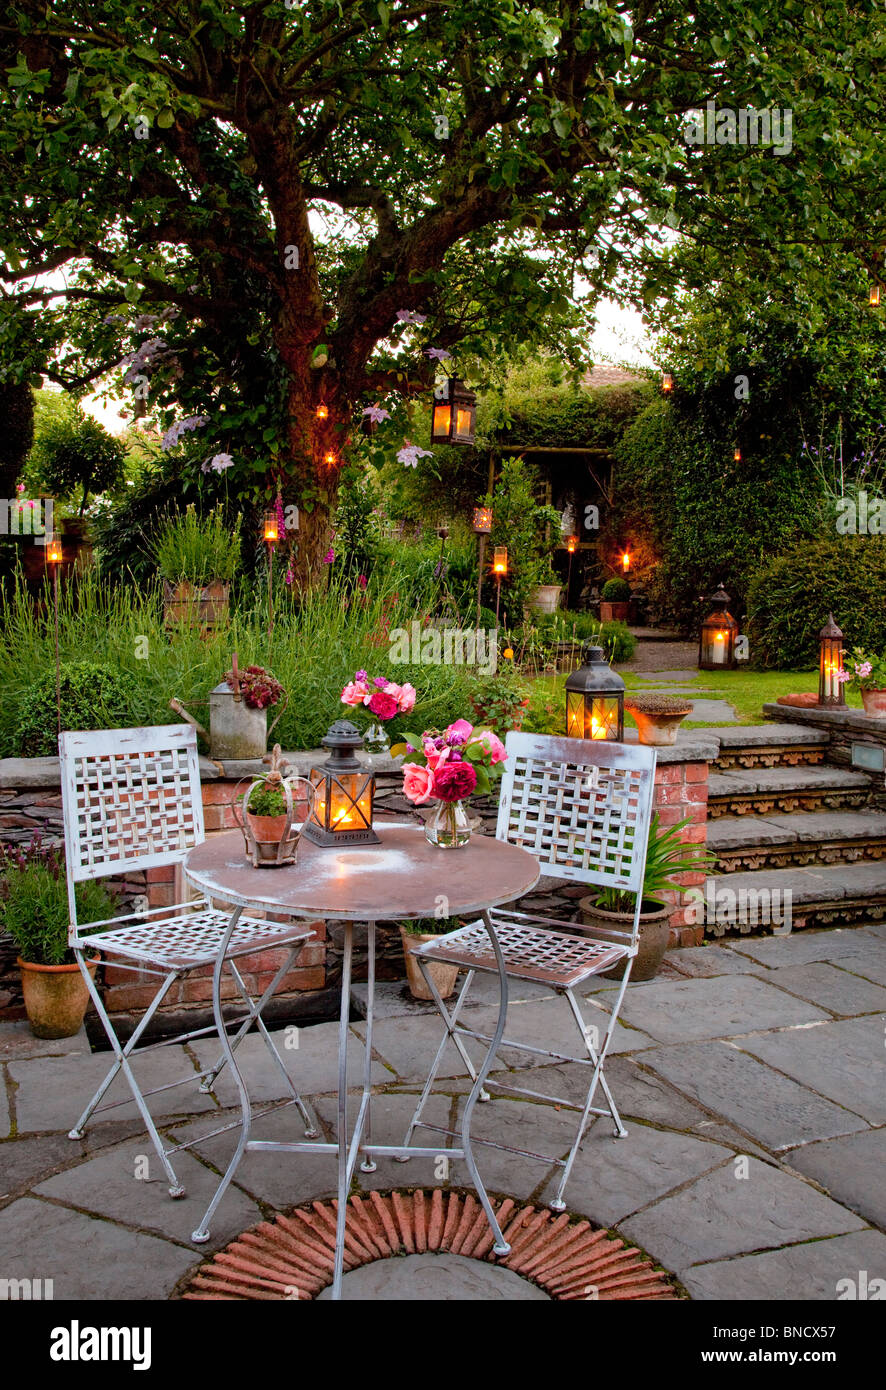 Metal table and chairs on patio with candles and lanterns in